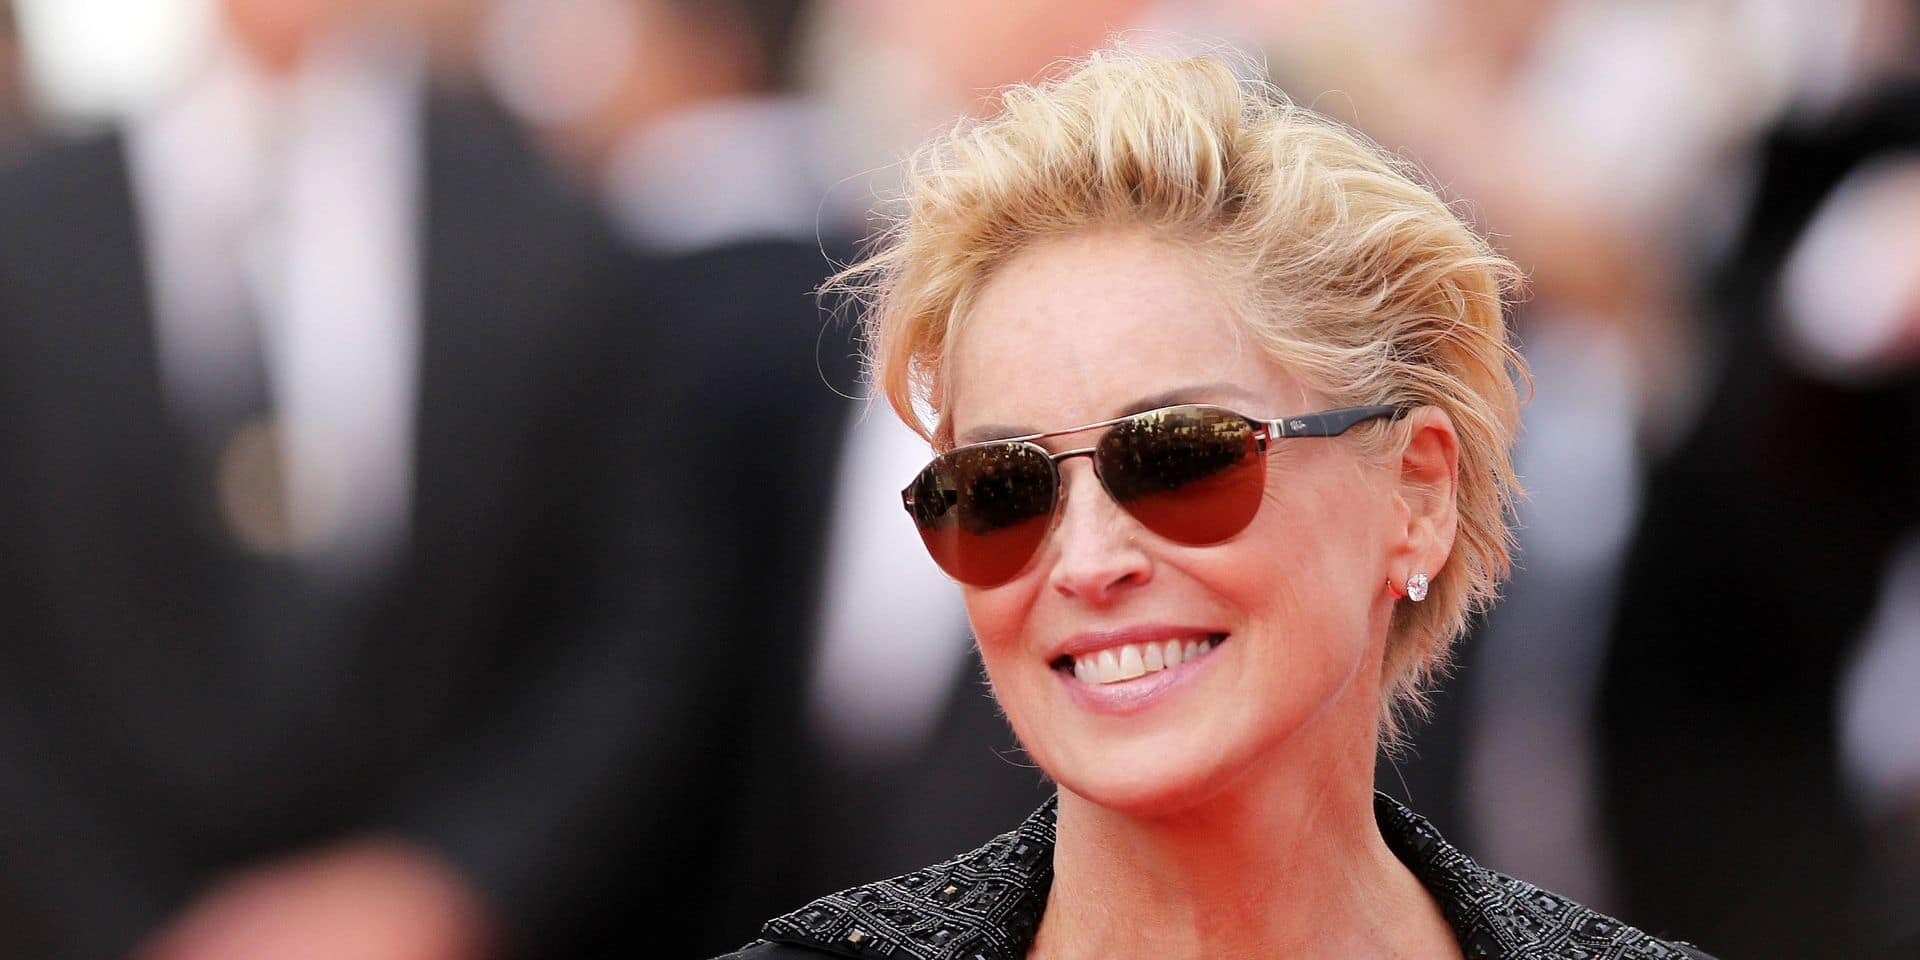 Surprise : Sharon Stone fait partie de l'équipe de transition de Joe Biden